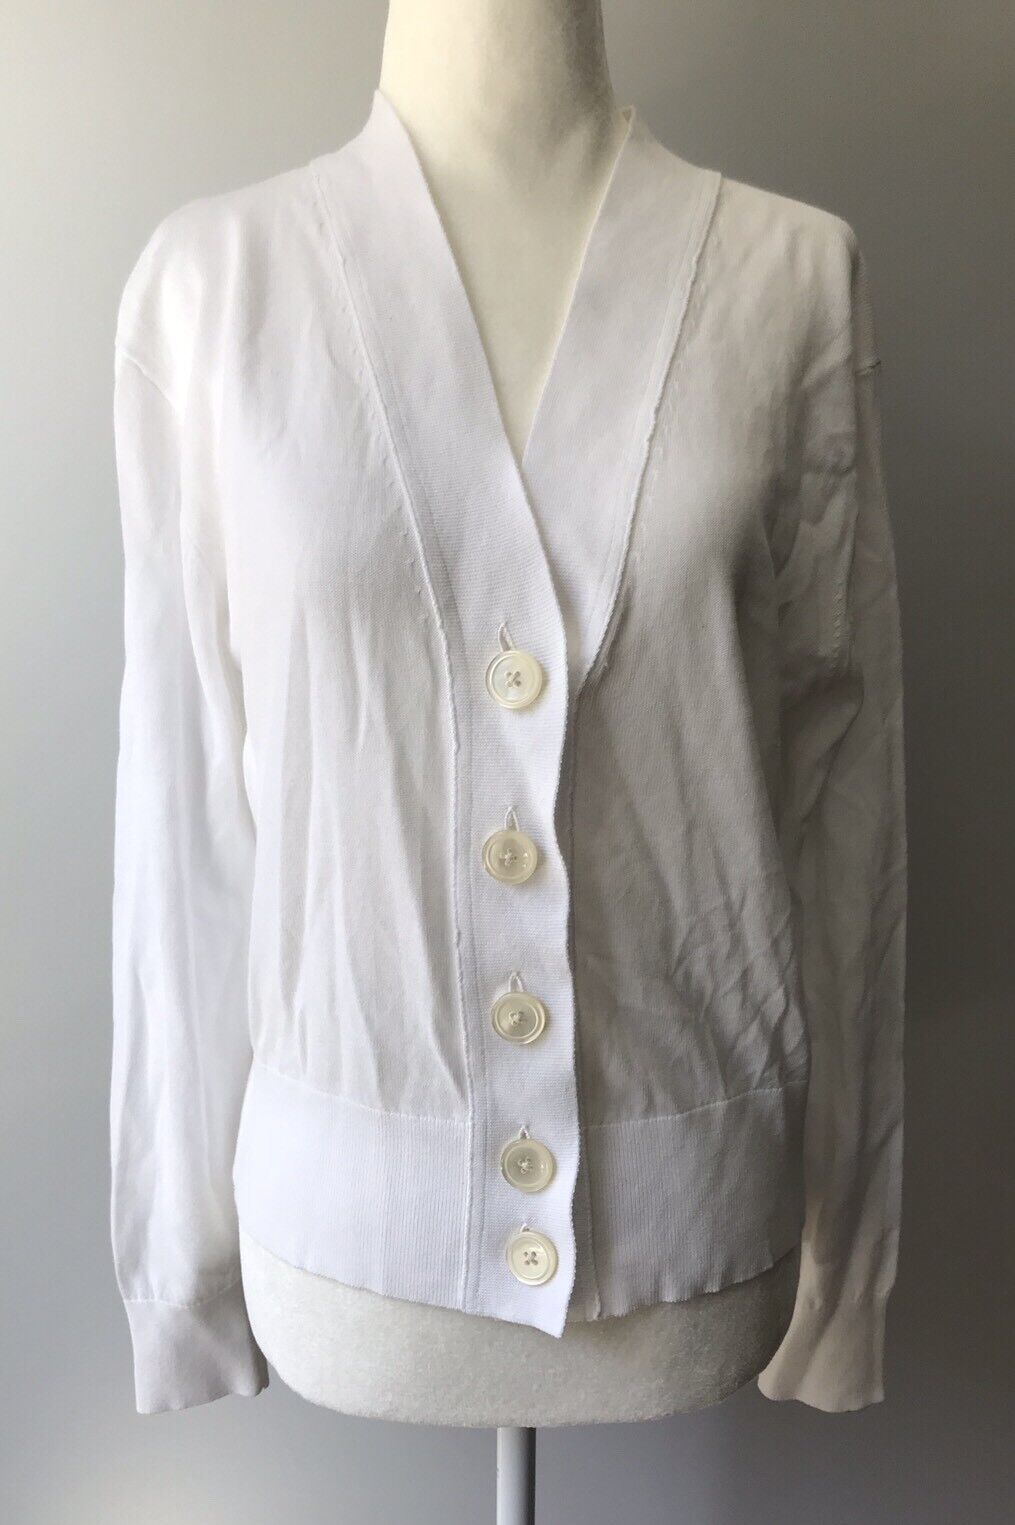 NEW J. CREW CROPPED LIGHTWEIGHT CARDIGAN SWEATER IN WHITE SZ M G5905